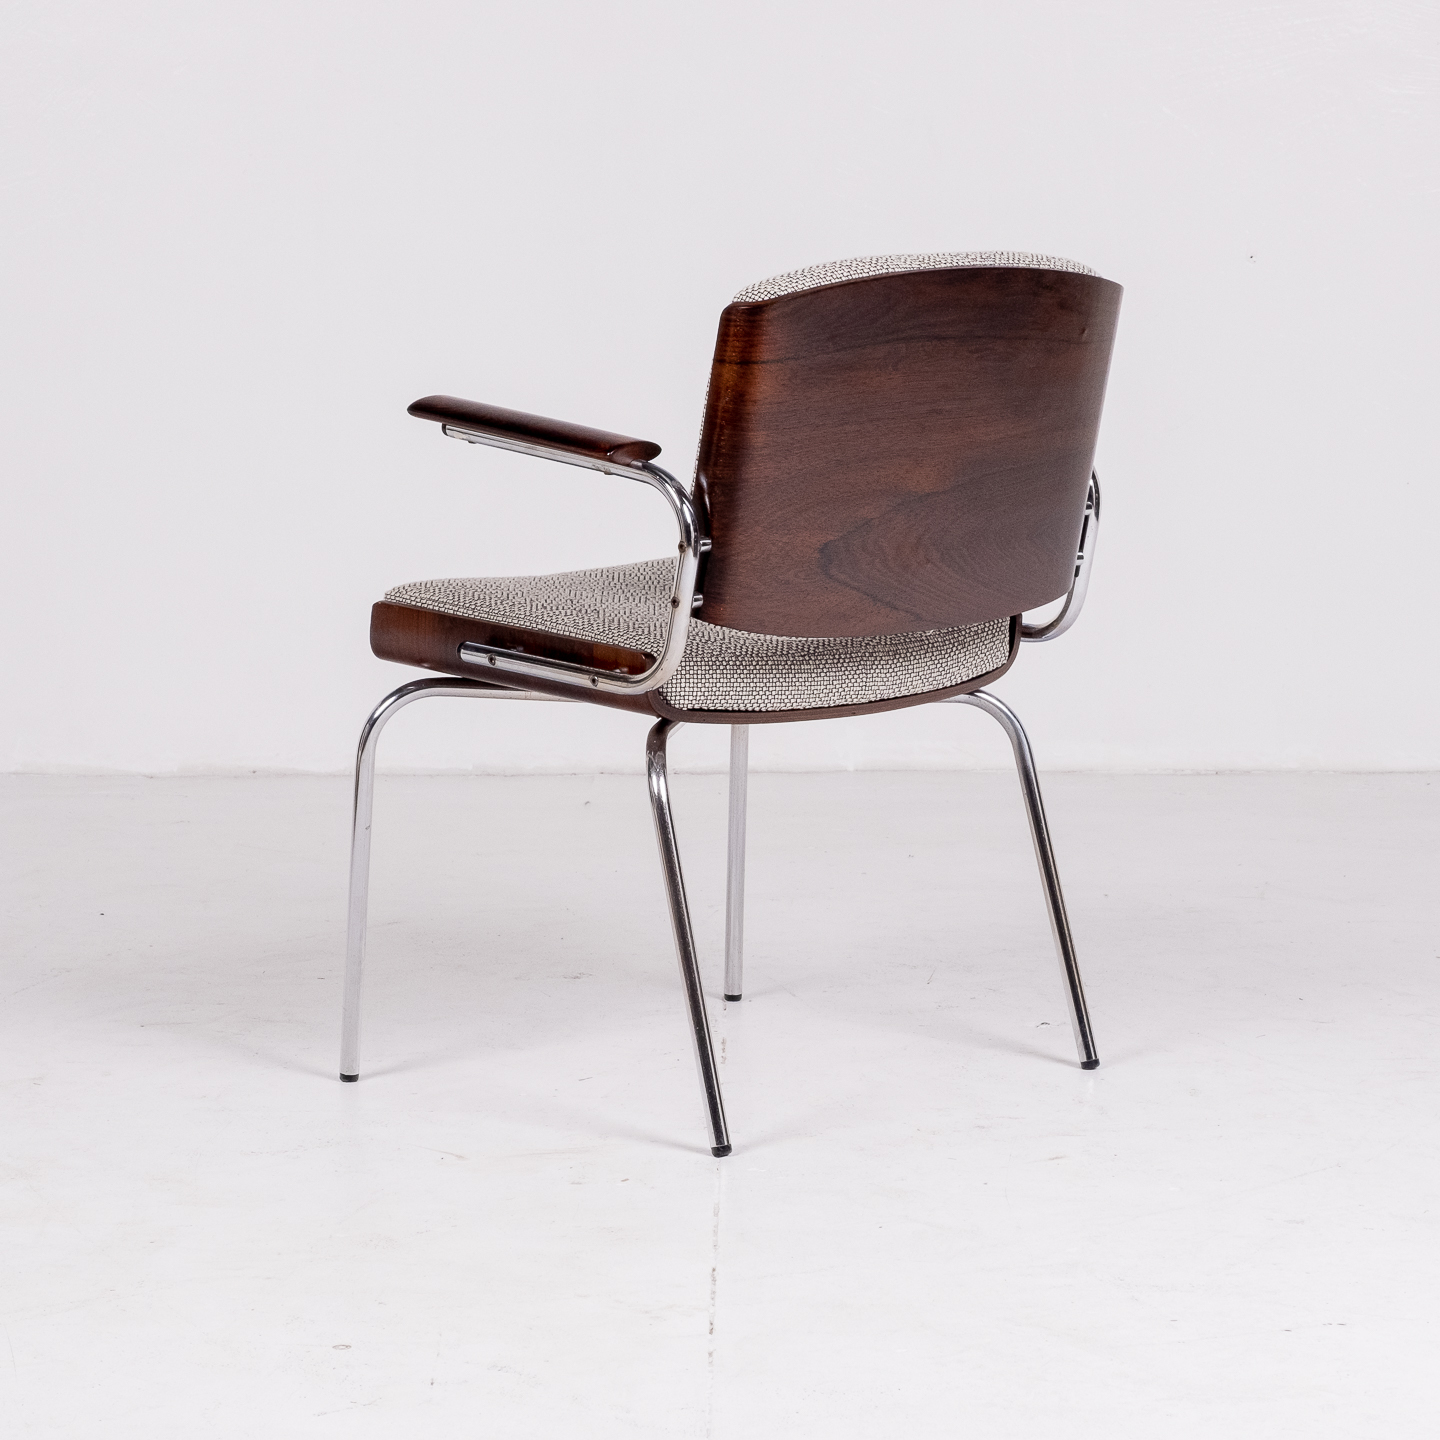 Set Of 4 Dining Chairs By Duba Mobelindustri In Rosewood, Chrome And New Kvadrat Upholstery, 1970s, Denmark 85